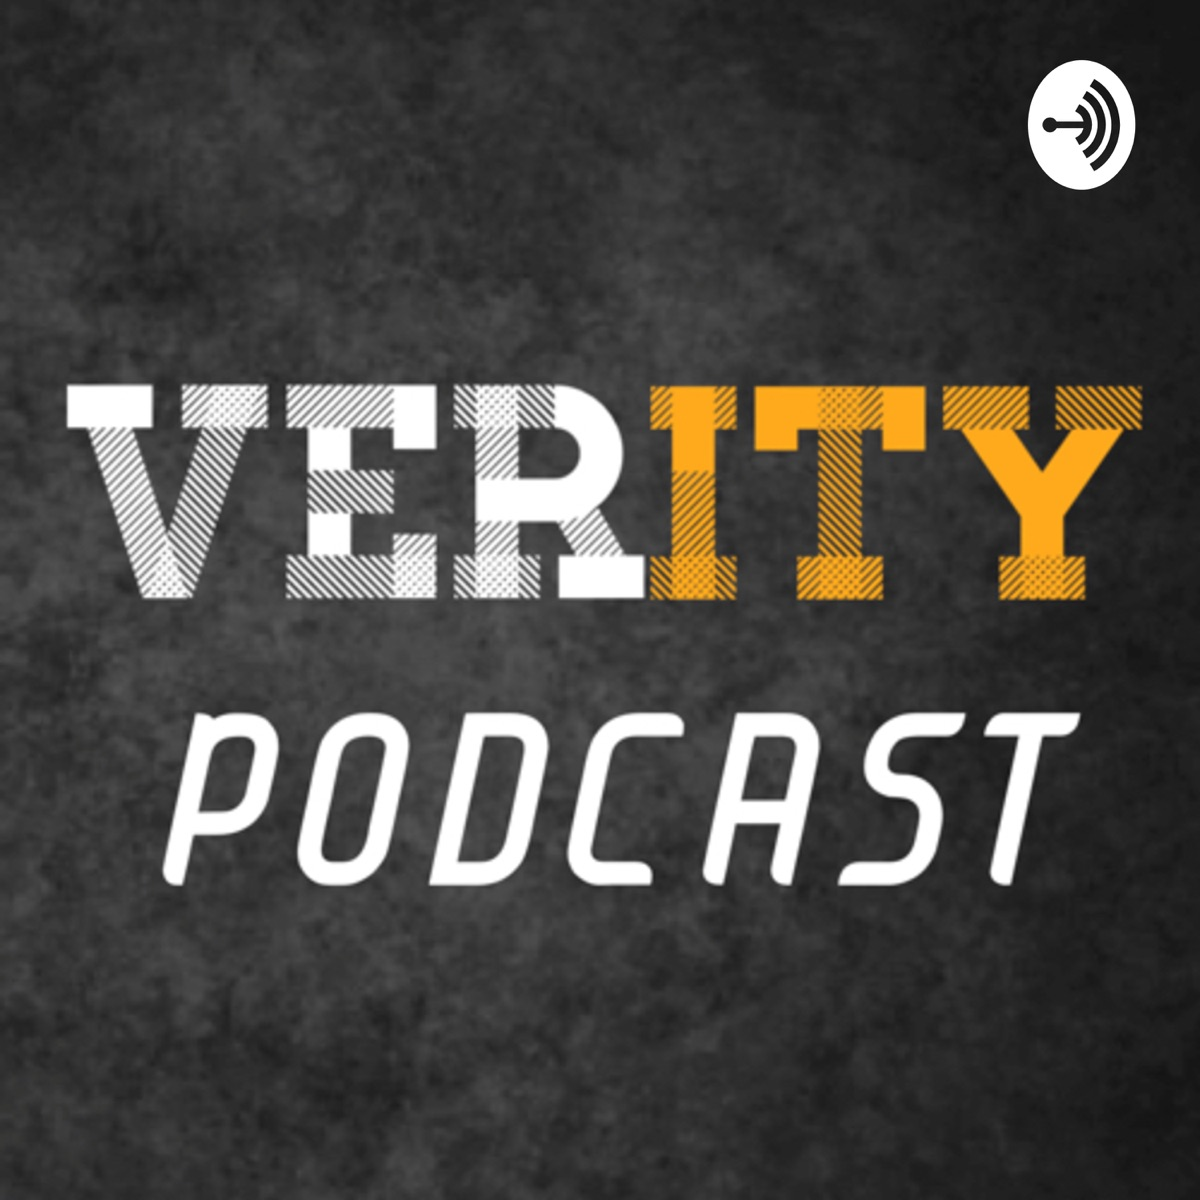 Verity Podcast